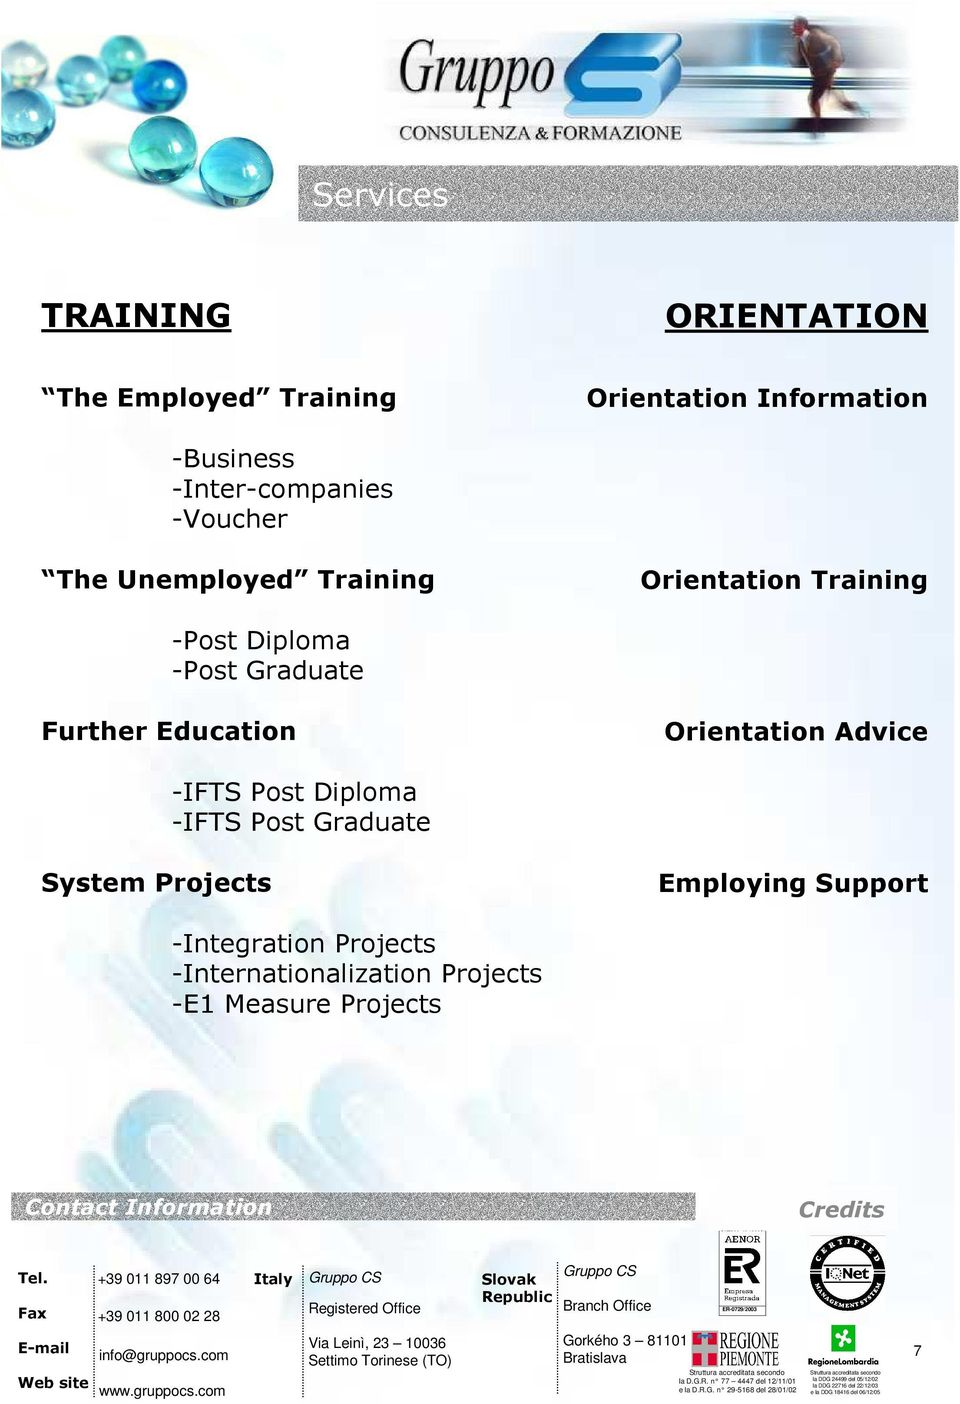 Graduate Further Education Orientation Advice -IFTS Post Diploma -IFTS Post Graduate System